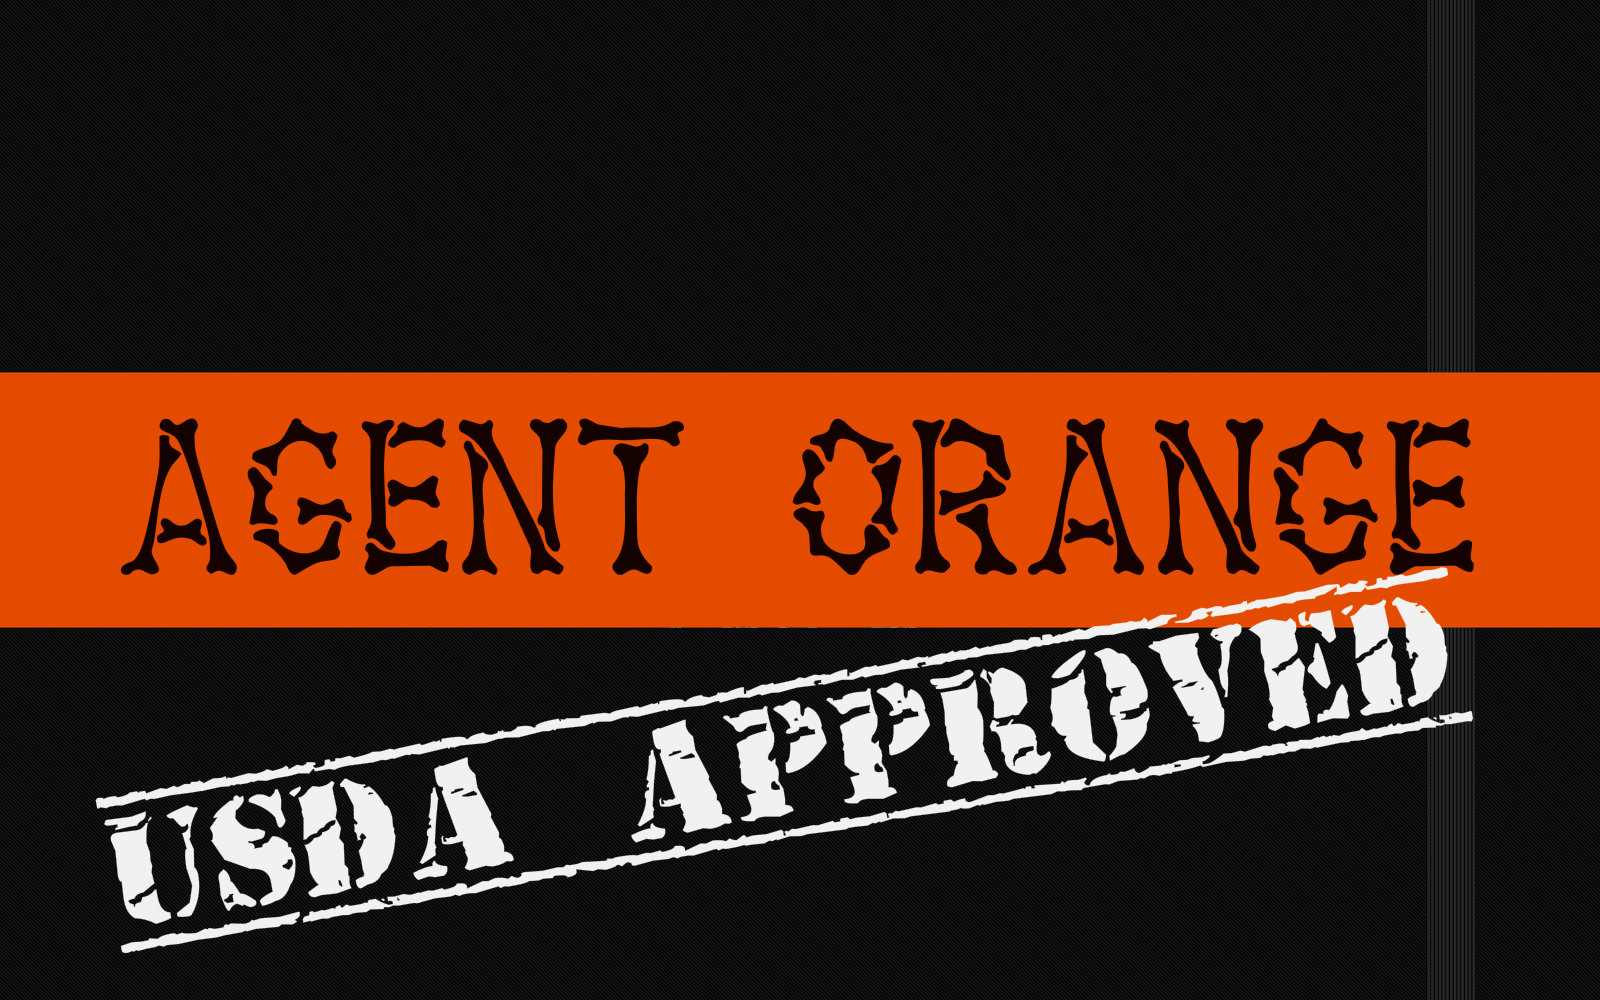 an introduction to the history of agent orange History old monsanto monsanto company inc industry: chemicals in the 1960s and 1970s, monsanto was a major producer of agent orange for united states armed forces operations in vietnam: 6 in 1968, it became the first company to start mass production of (visible) light-emitting diodes (leds), using gallium arsenide phosphide.